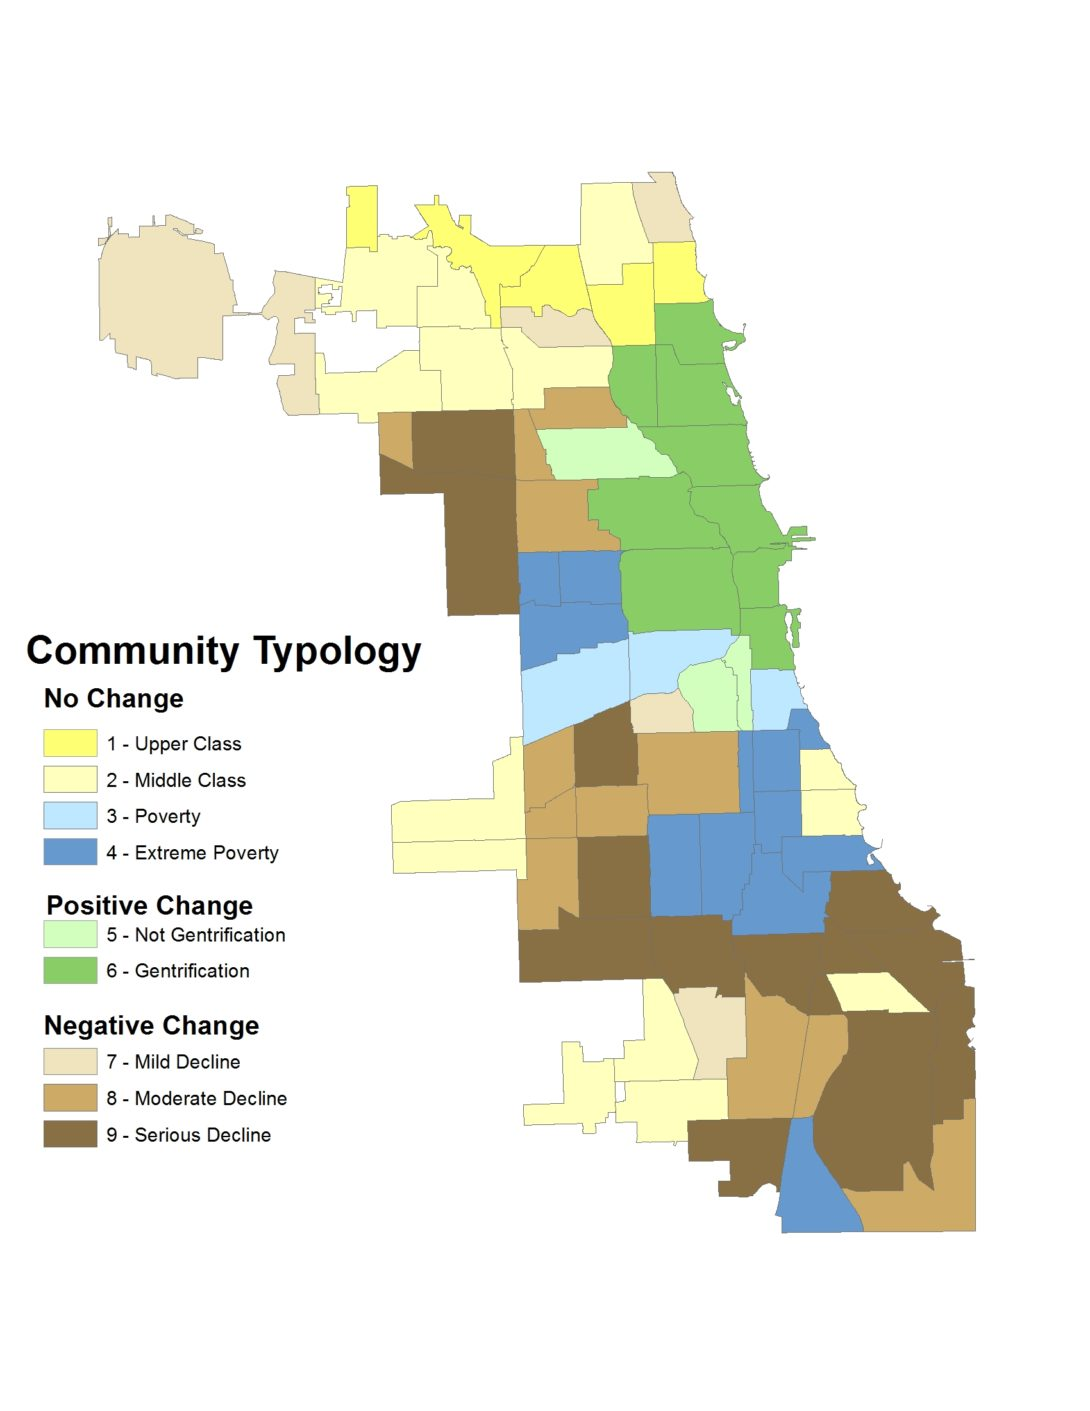 Map of Chicago showing the 9 categories of neighborhood change outlined in the report.